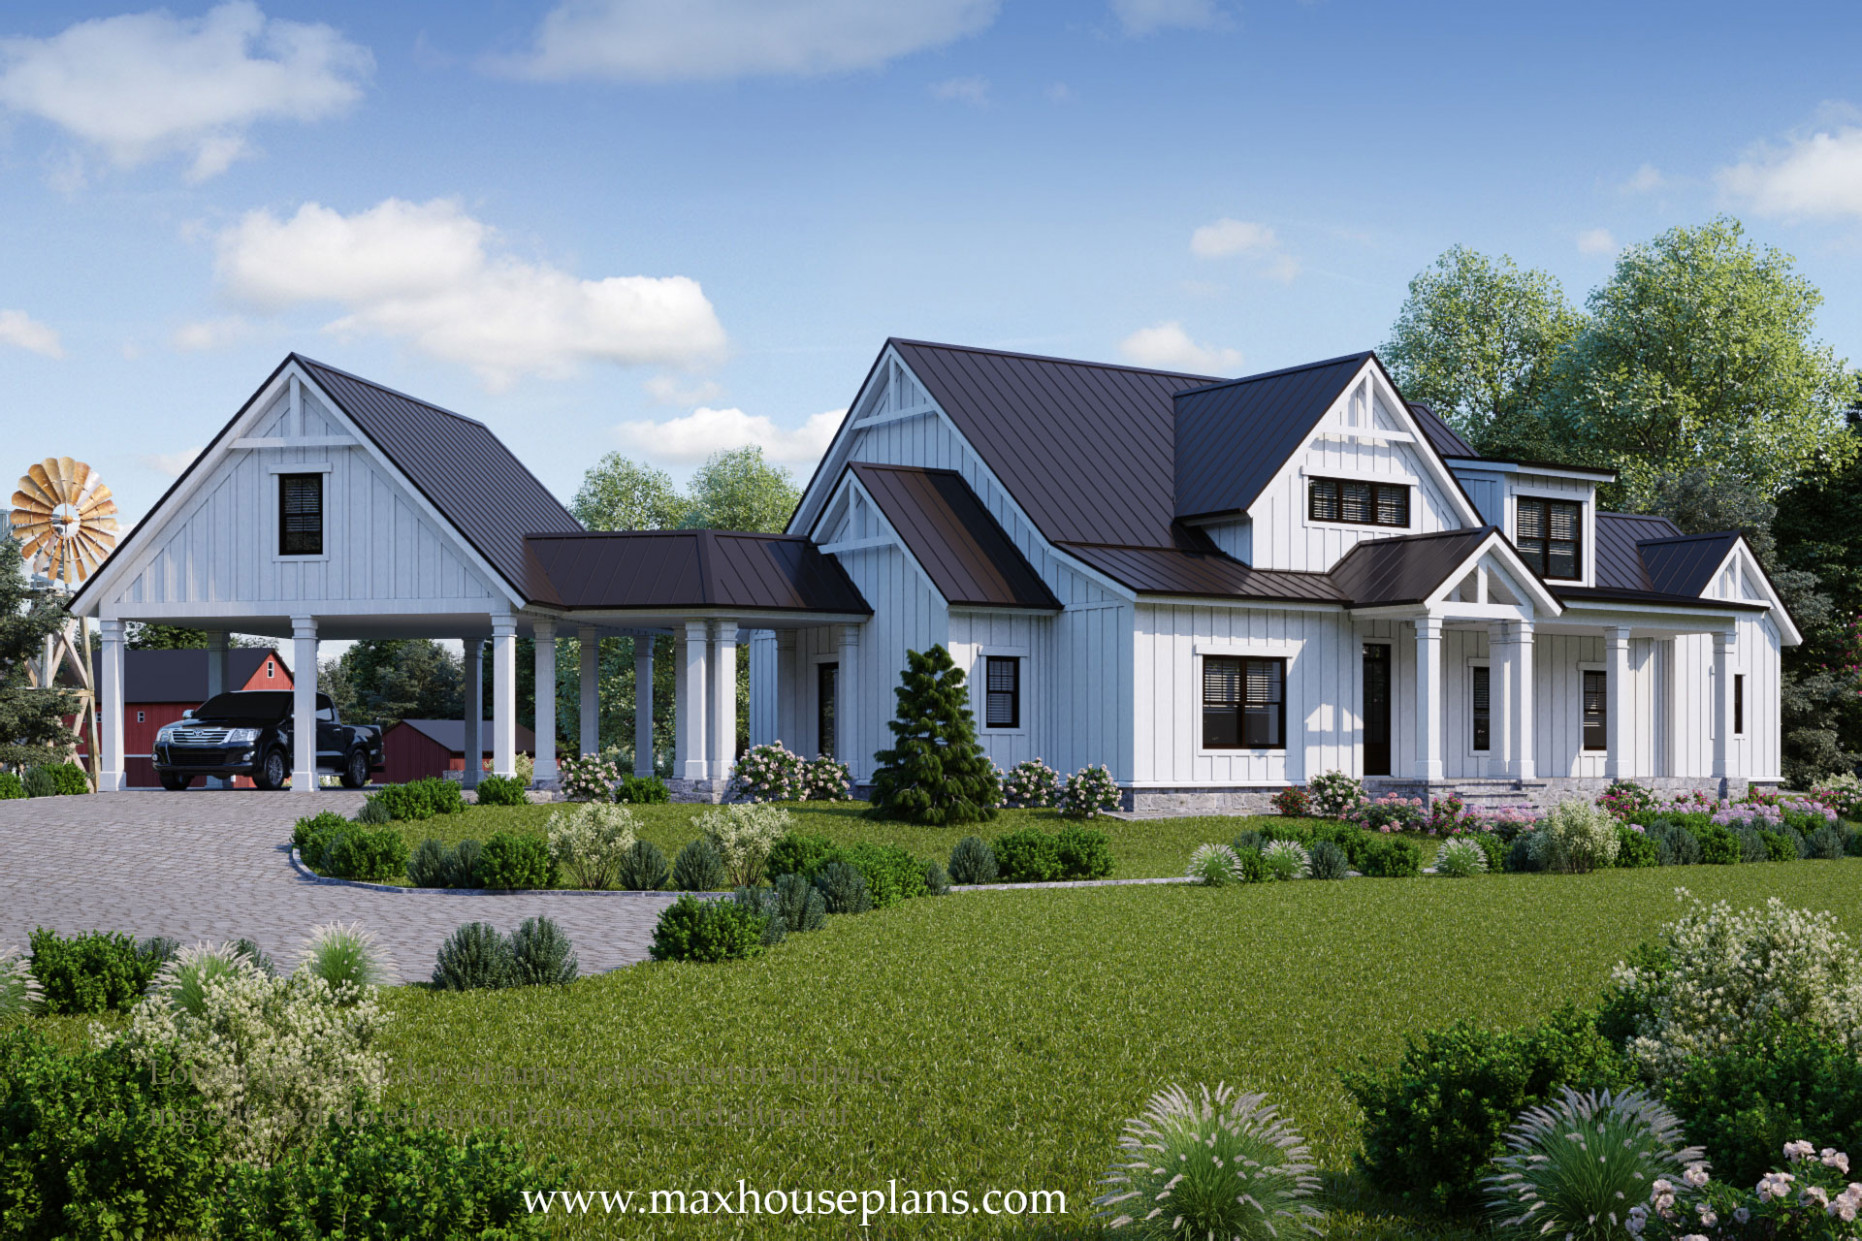 Modern Farmhouse House Plan Max Fulbright Designs Modern Attached Carport